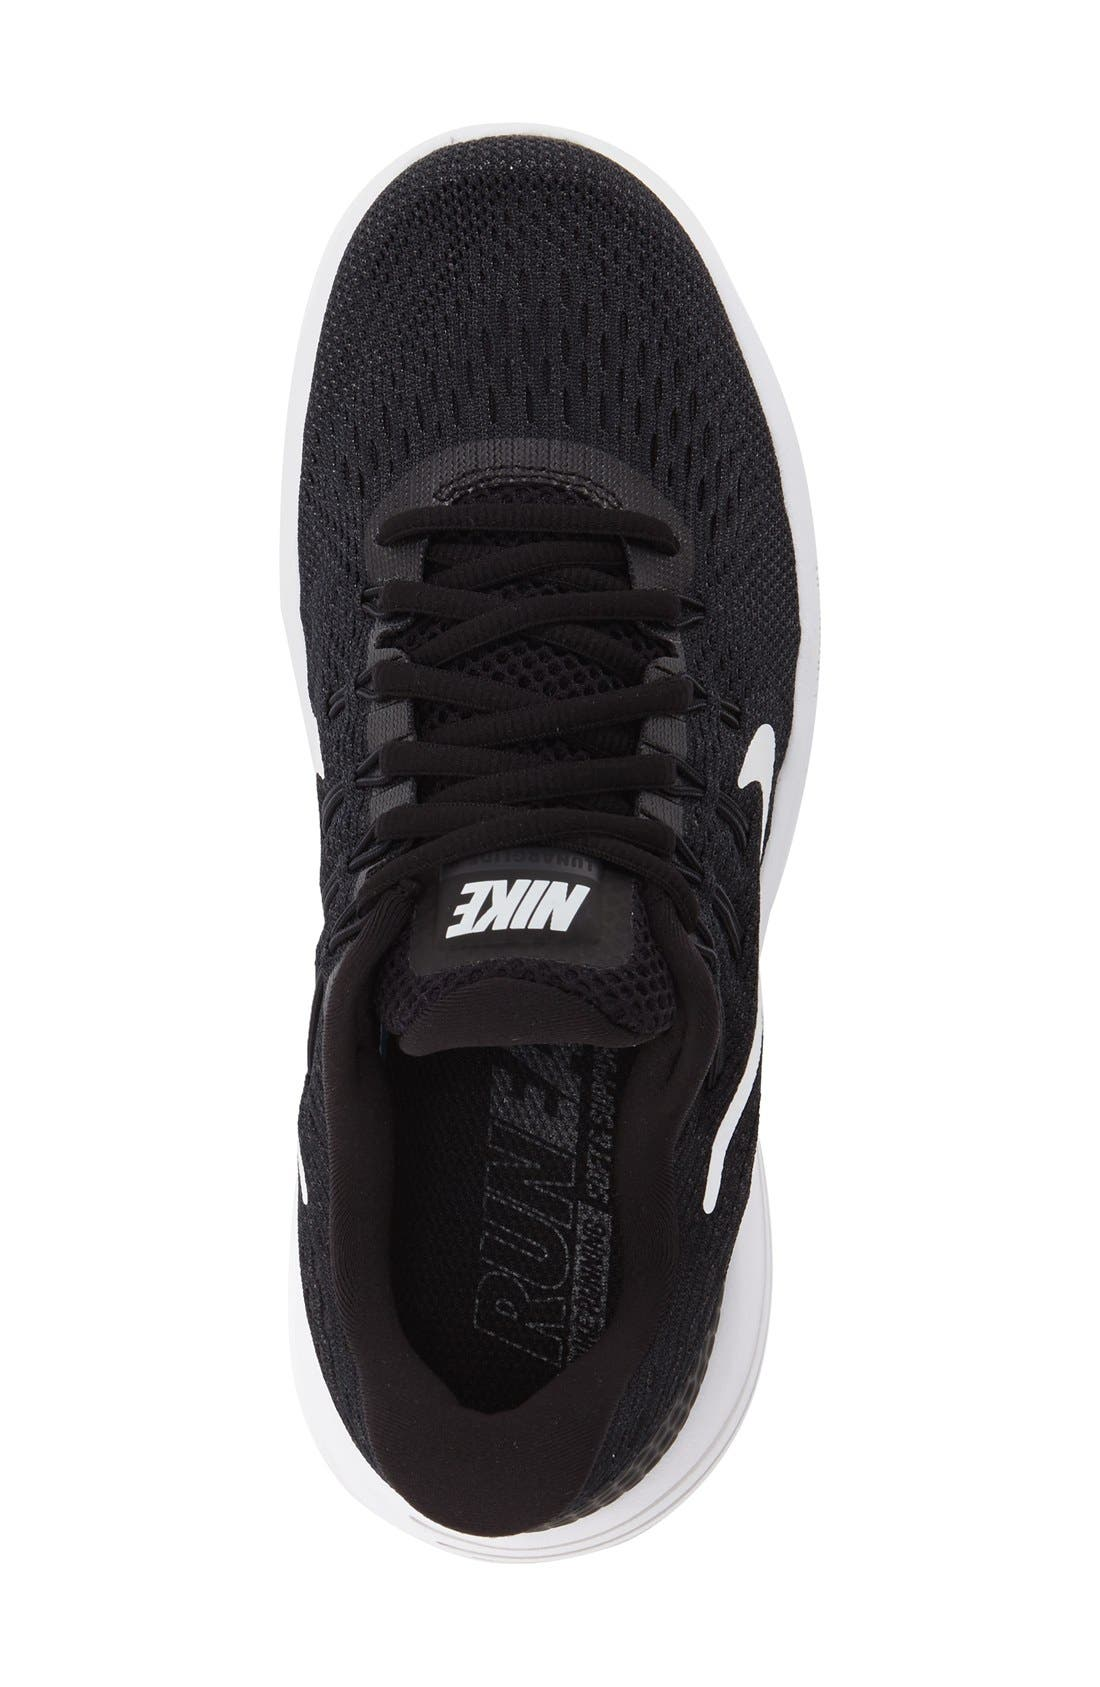 'LunarGlide 8' Running Shoe,                             Alternate thumbnail 3, color,                             Black/ White/ Anthracite